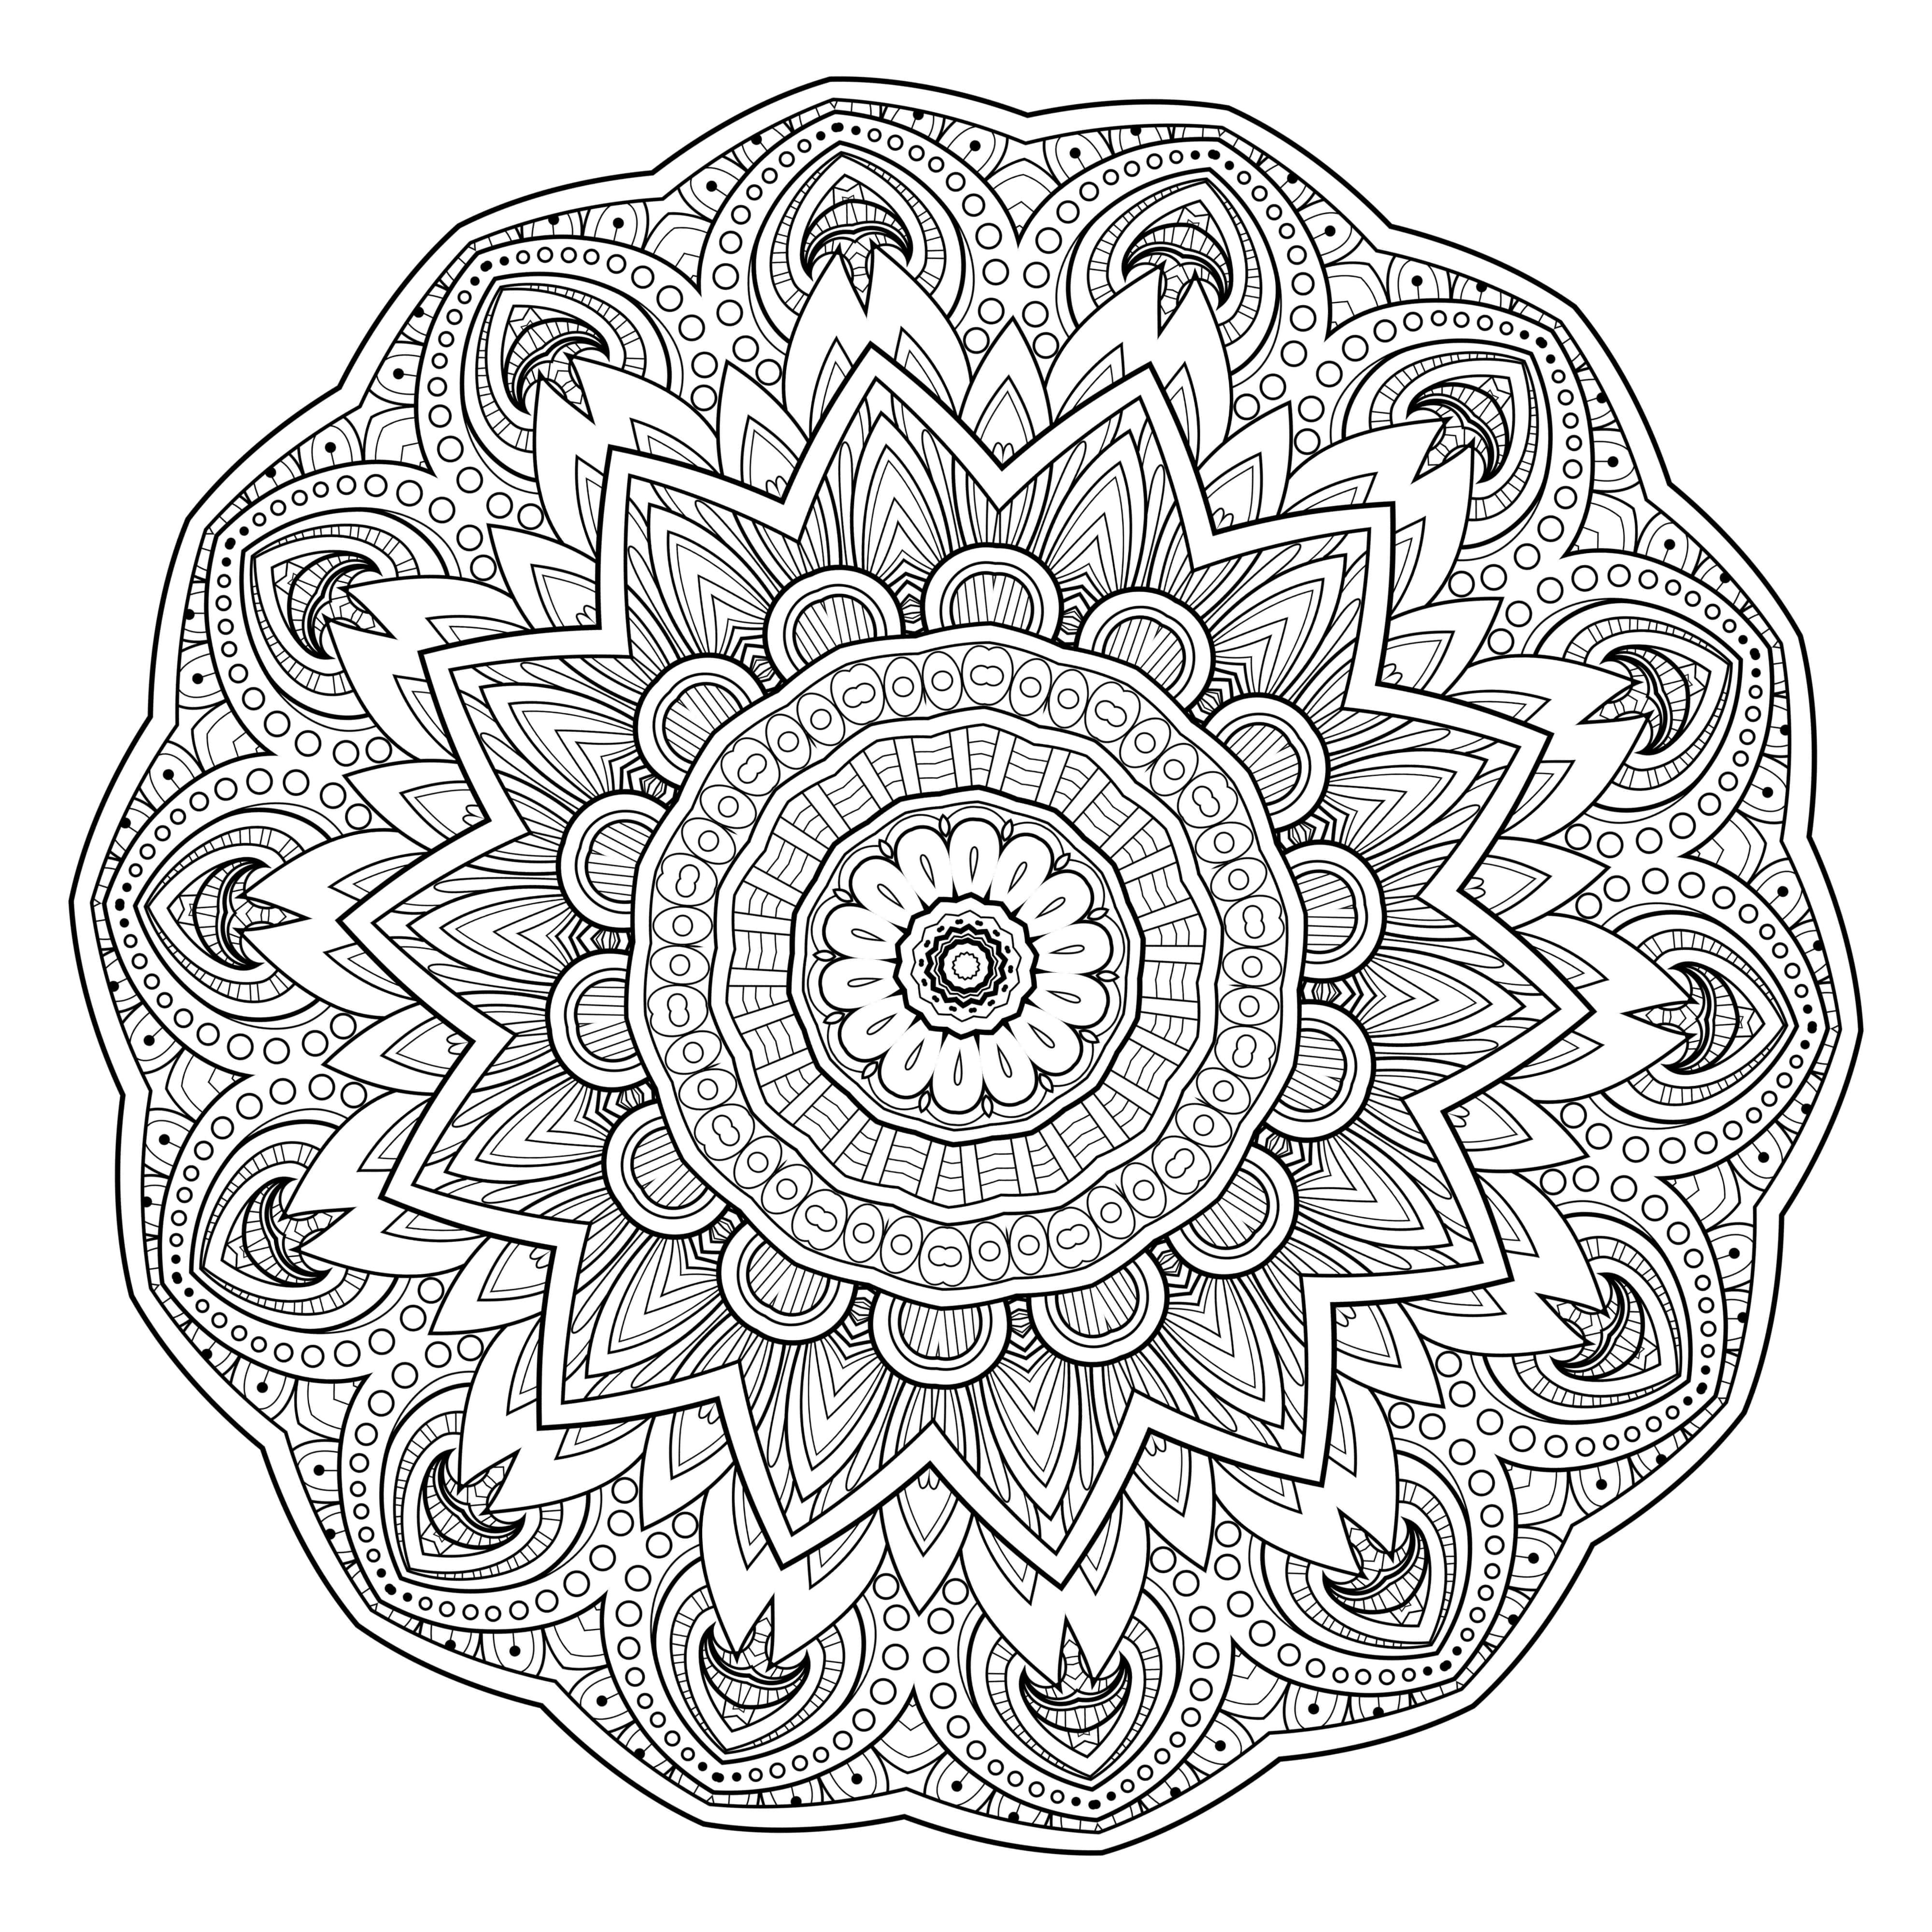 4000x4000 Free Printable Mandala Coloring Pages For Adults Coloring Pages